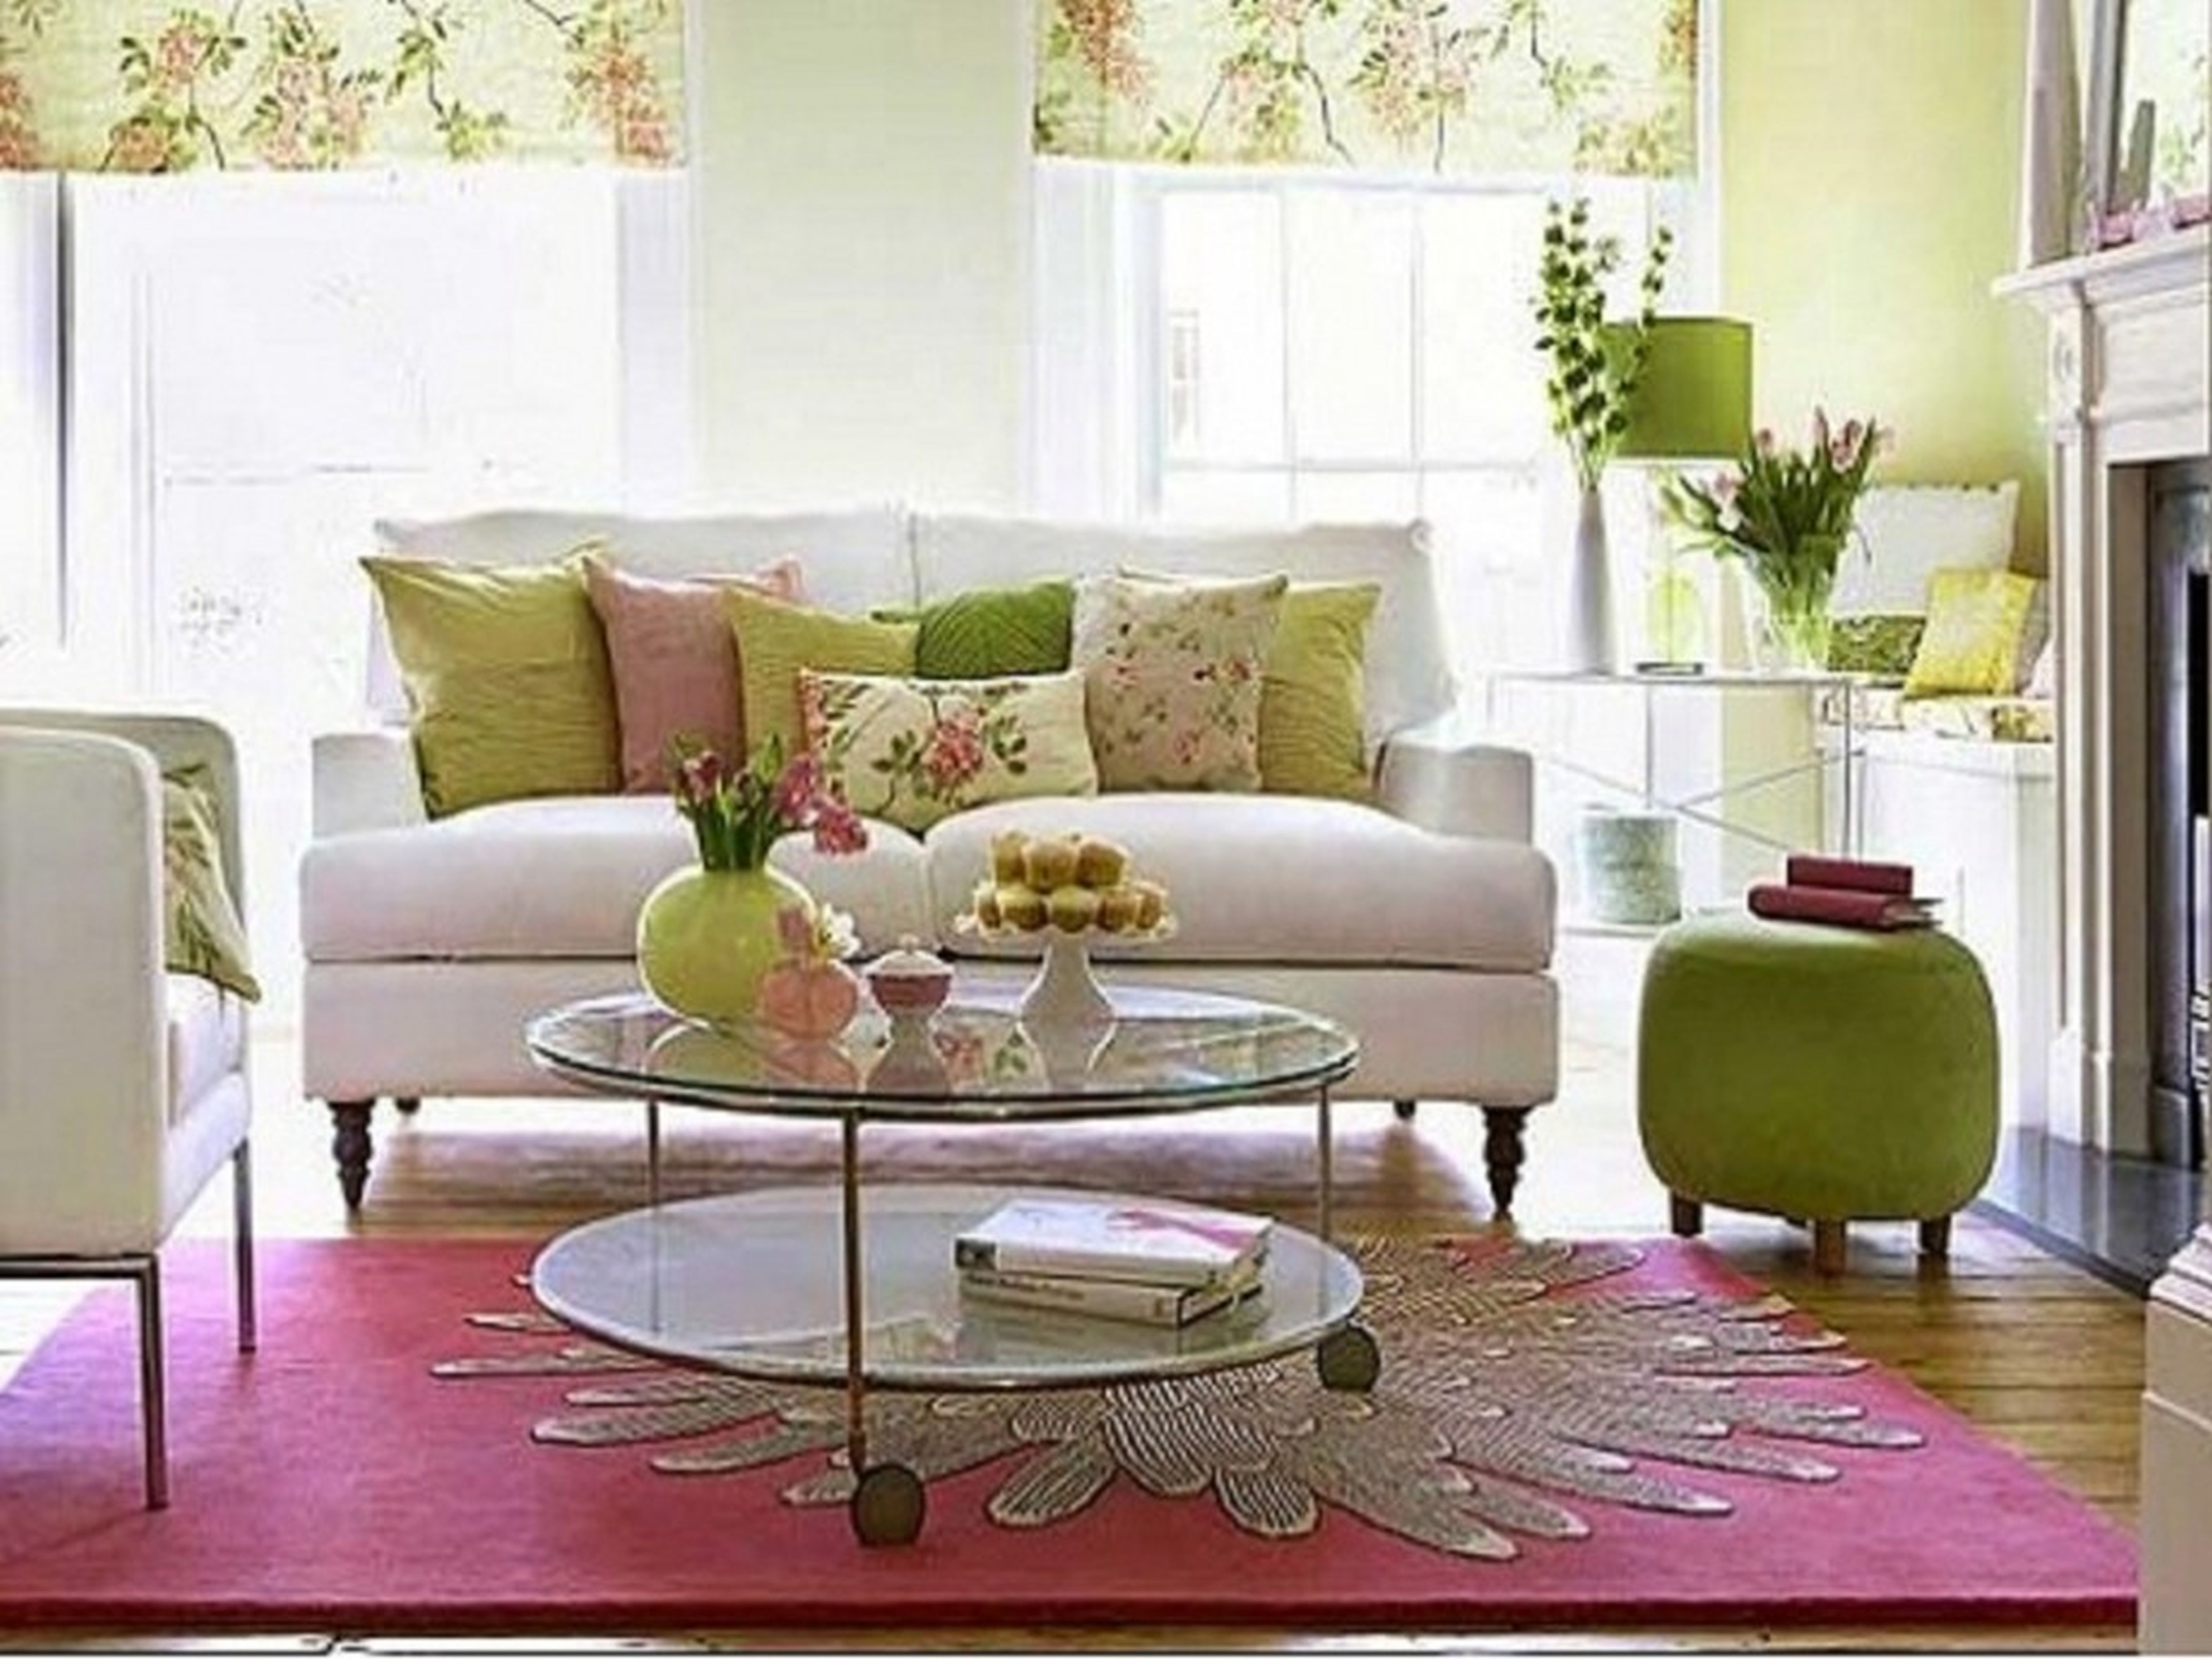 Best 30 Cozy Home Decor Ideas For Your Home – The Wow Style This Month